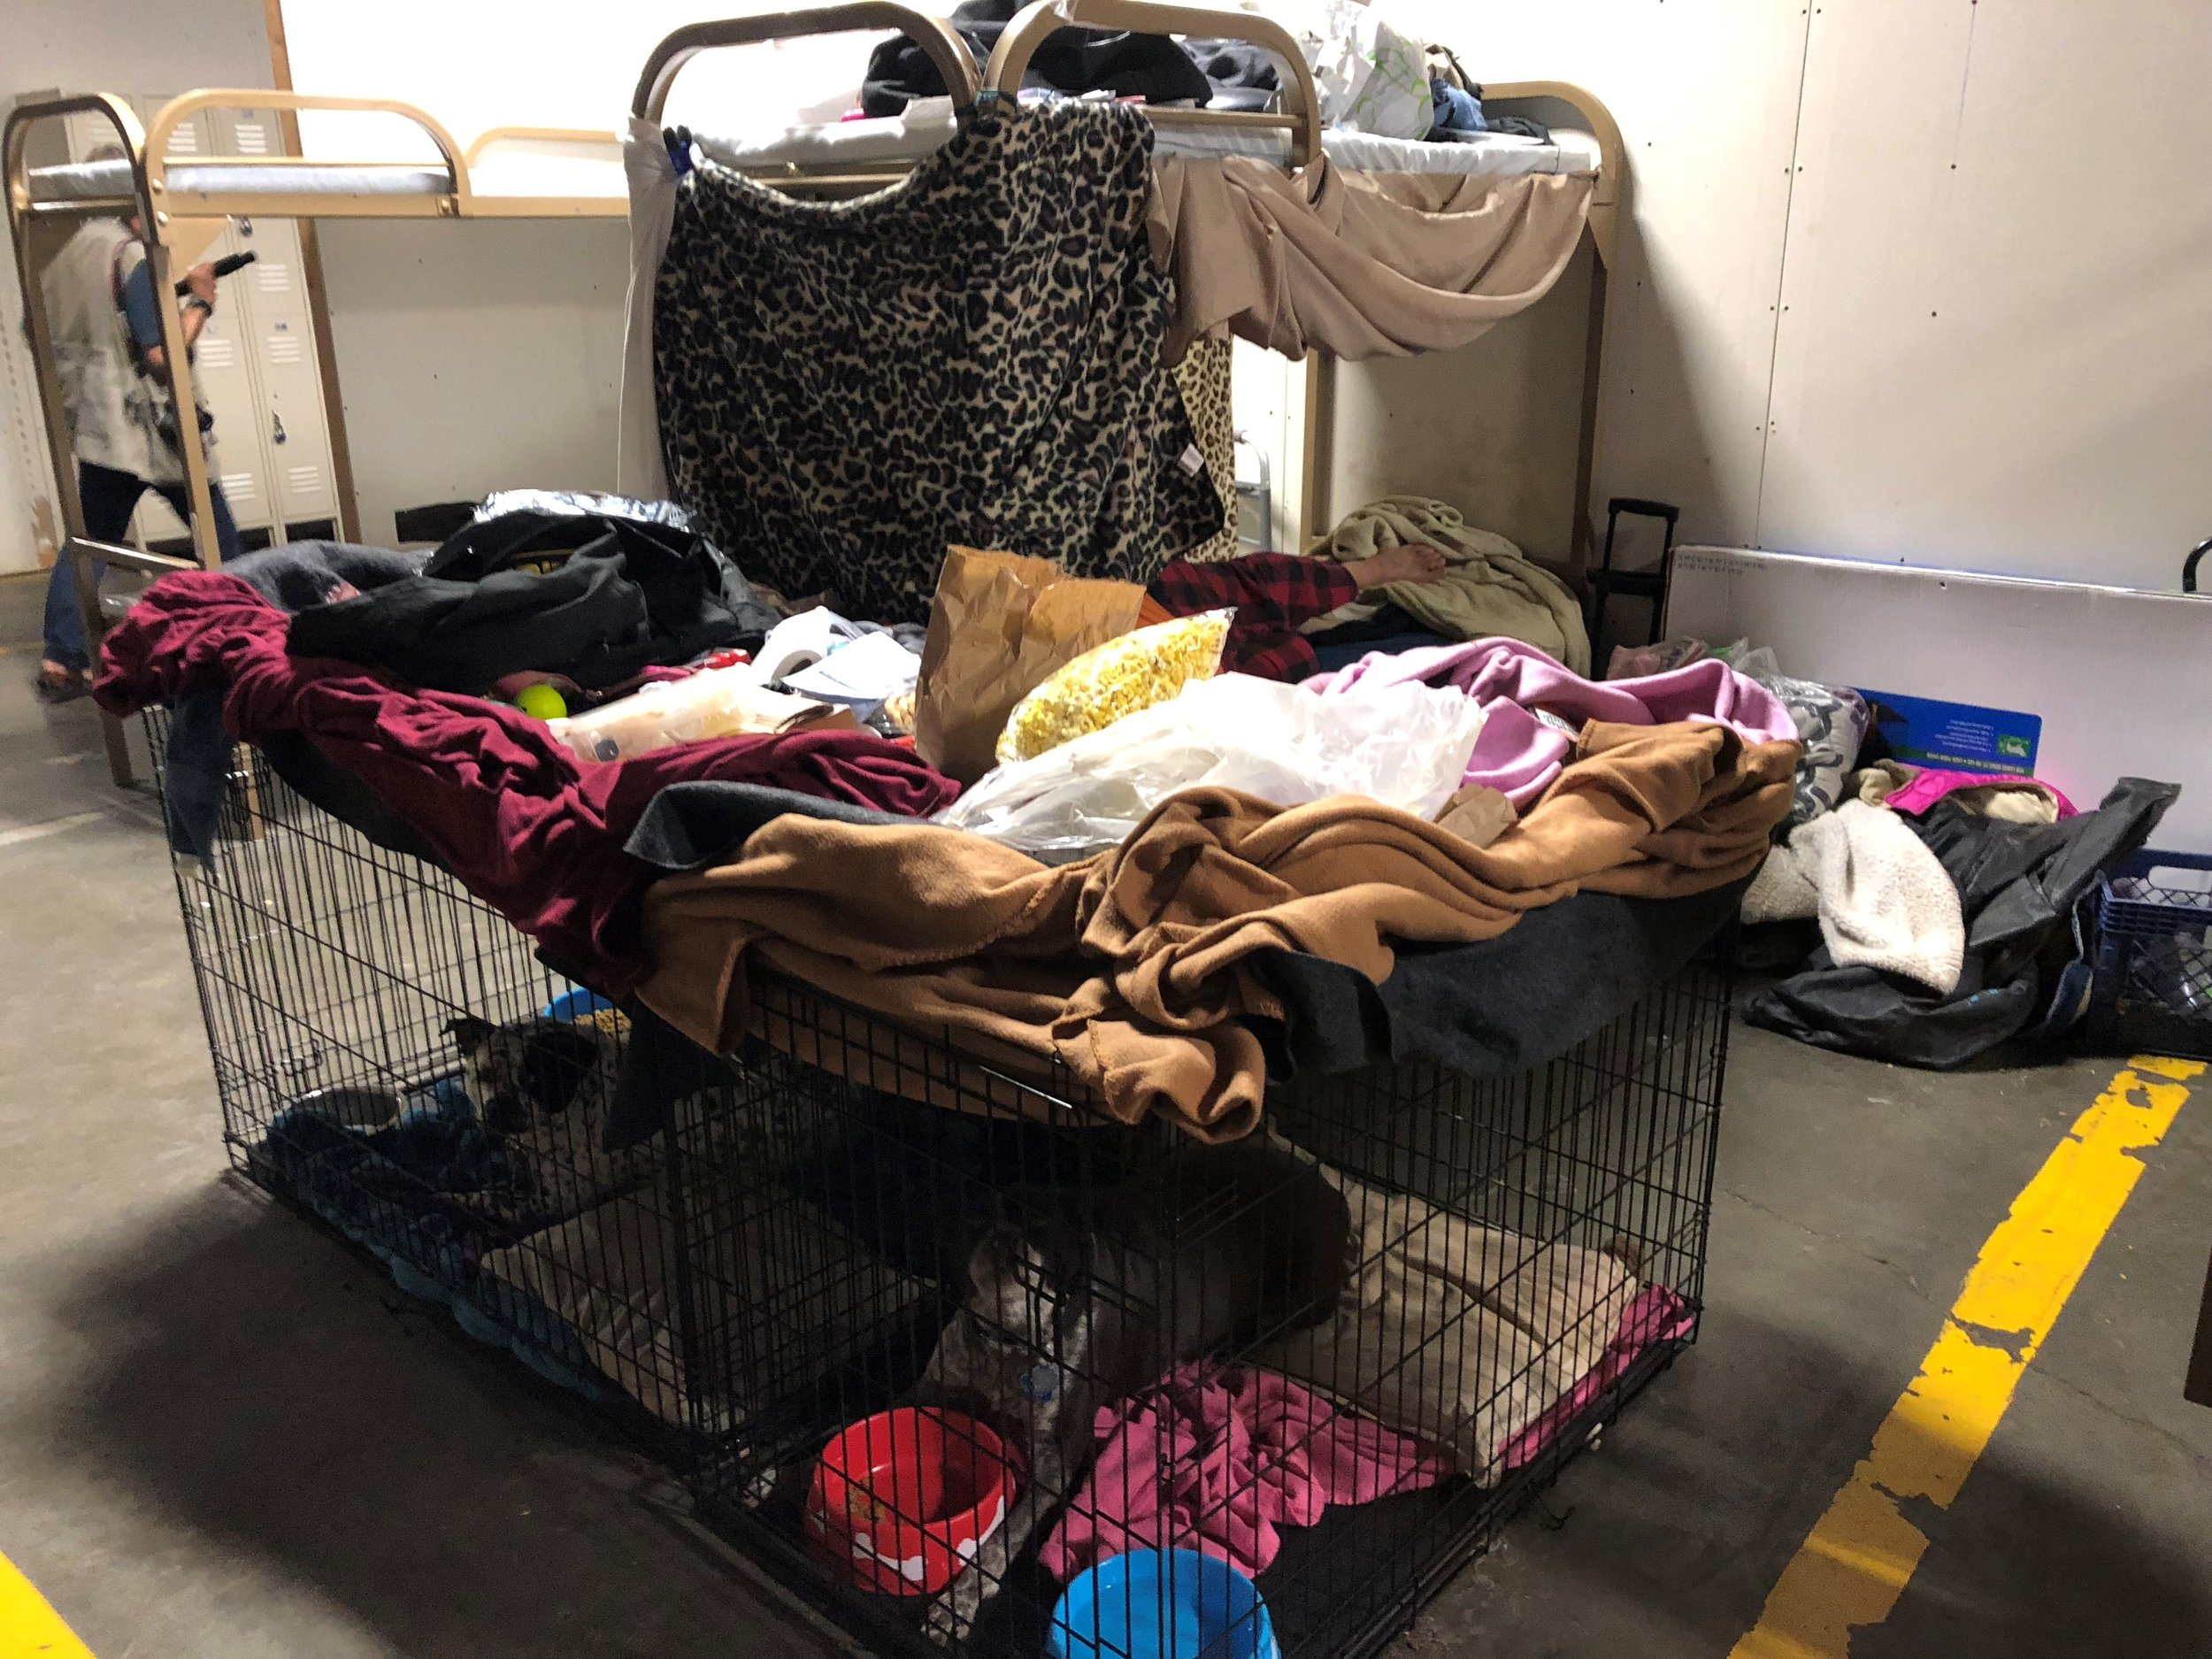 The City's Triage Shelter has lowered barriers to entry by accepting pets, partners and possessions.